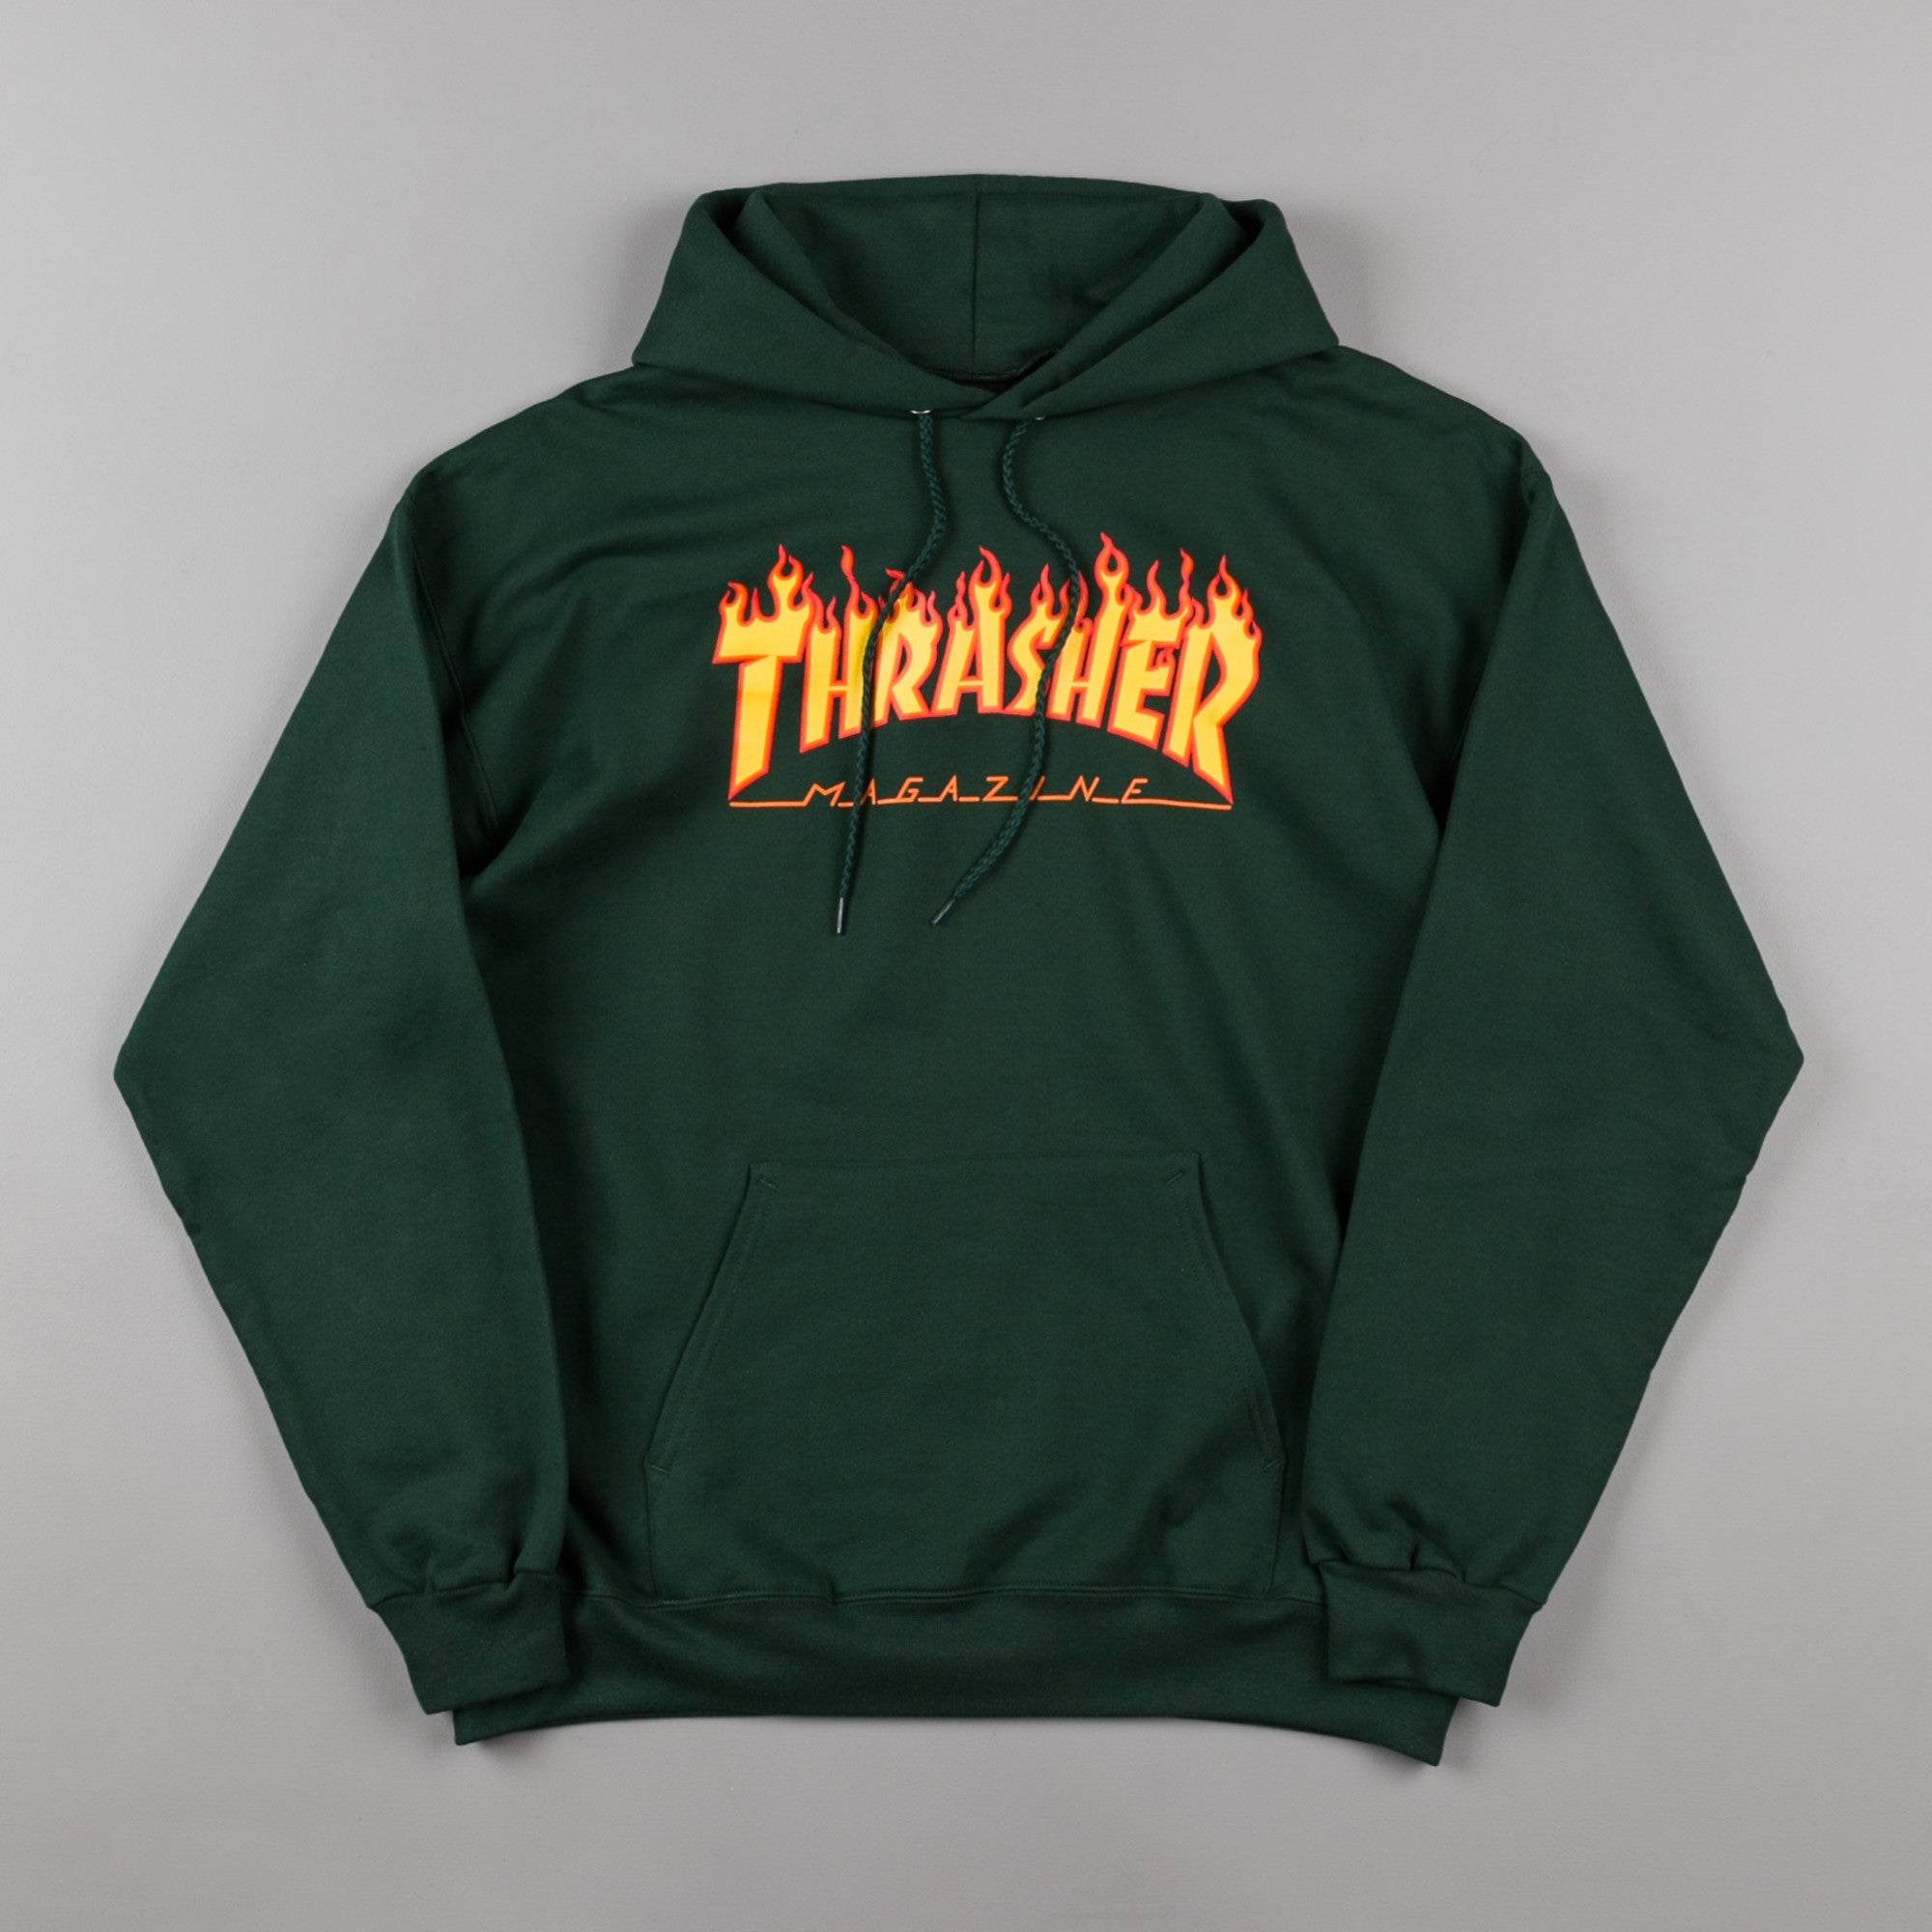 Thrasher Flame Logo Hooded Sweatshirt - Forest Green